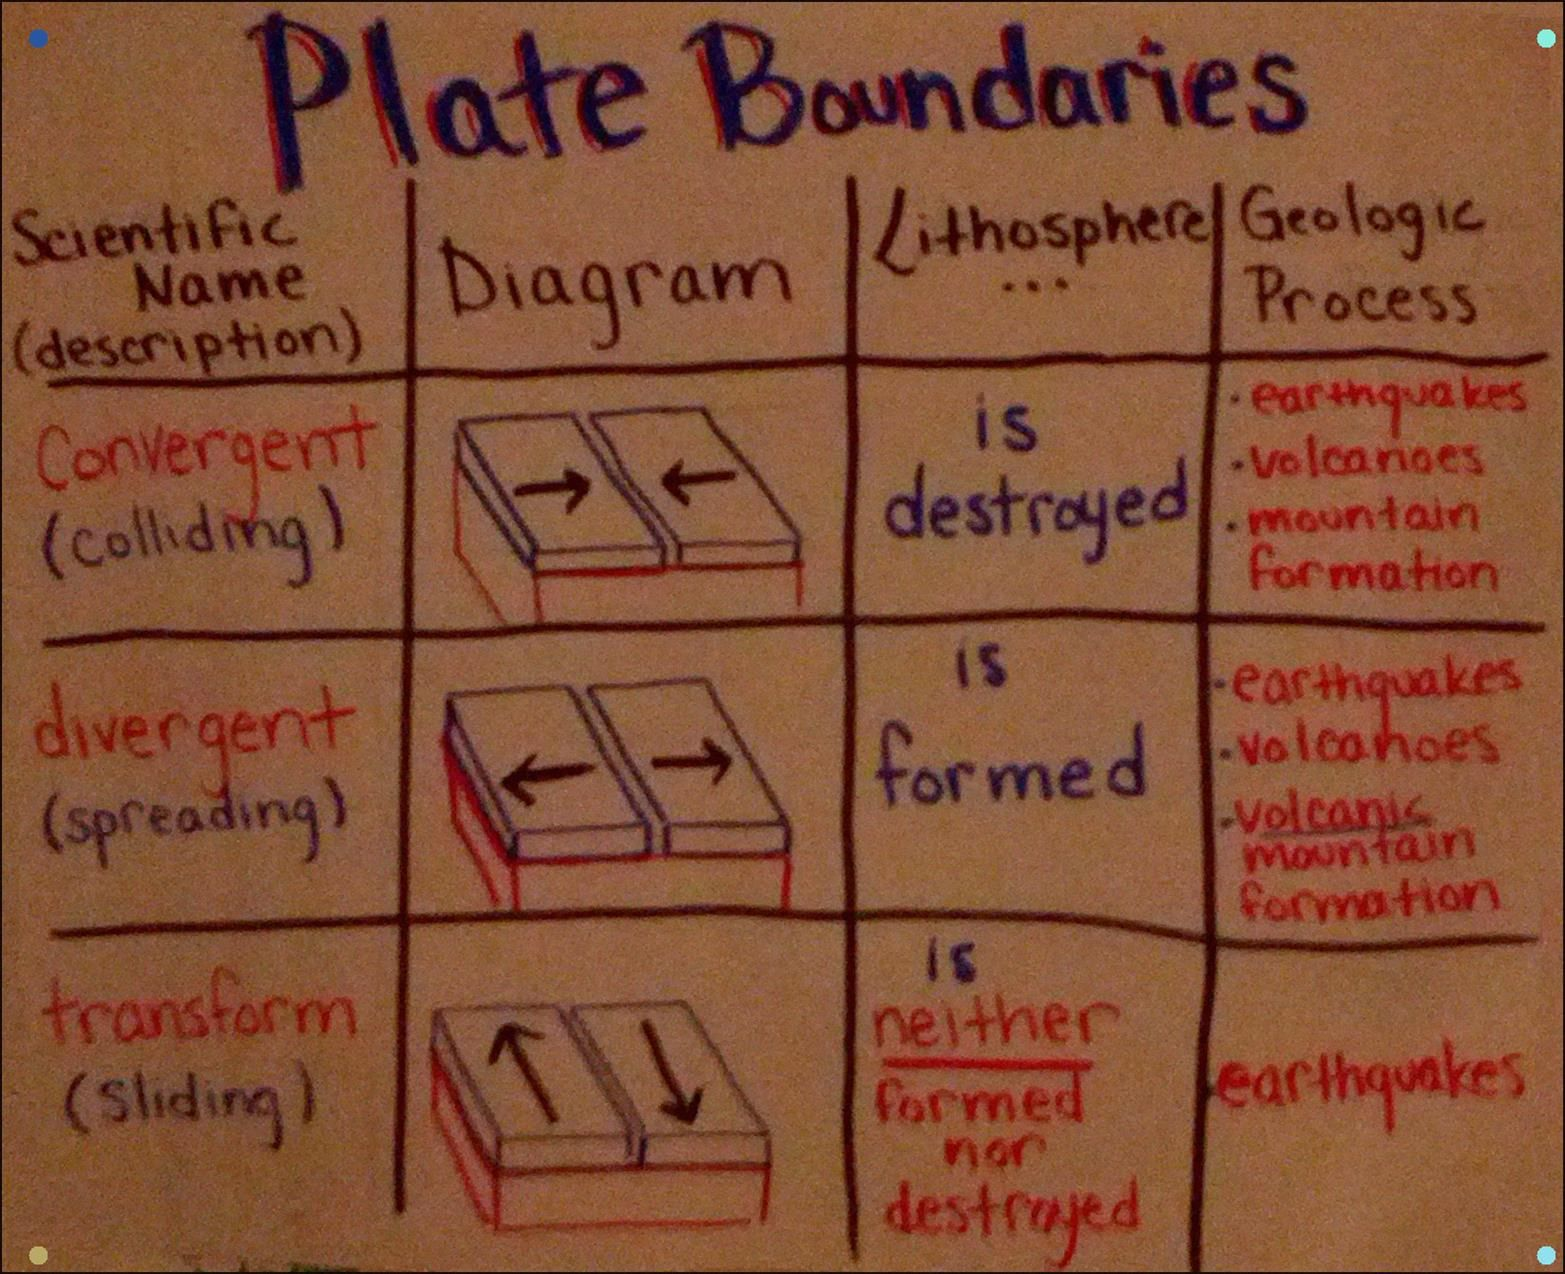 An Anchor Chart I Made All About Plate Boundaries Transform Divergent Convergent Earth Science Lessons Science Anchor Charts Plate Boundaries [ 1274 x 1565 Pixel ]